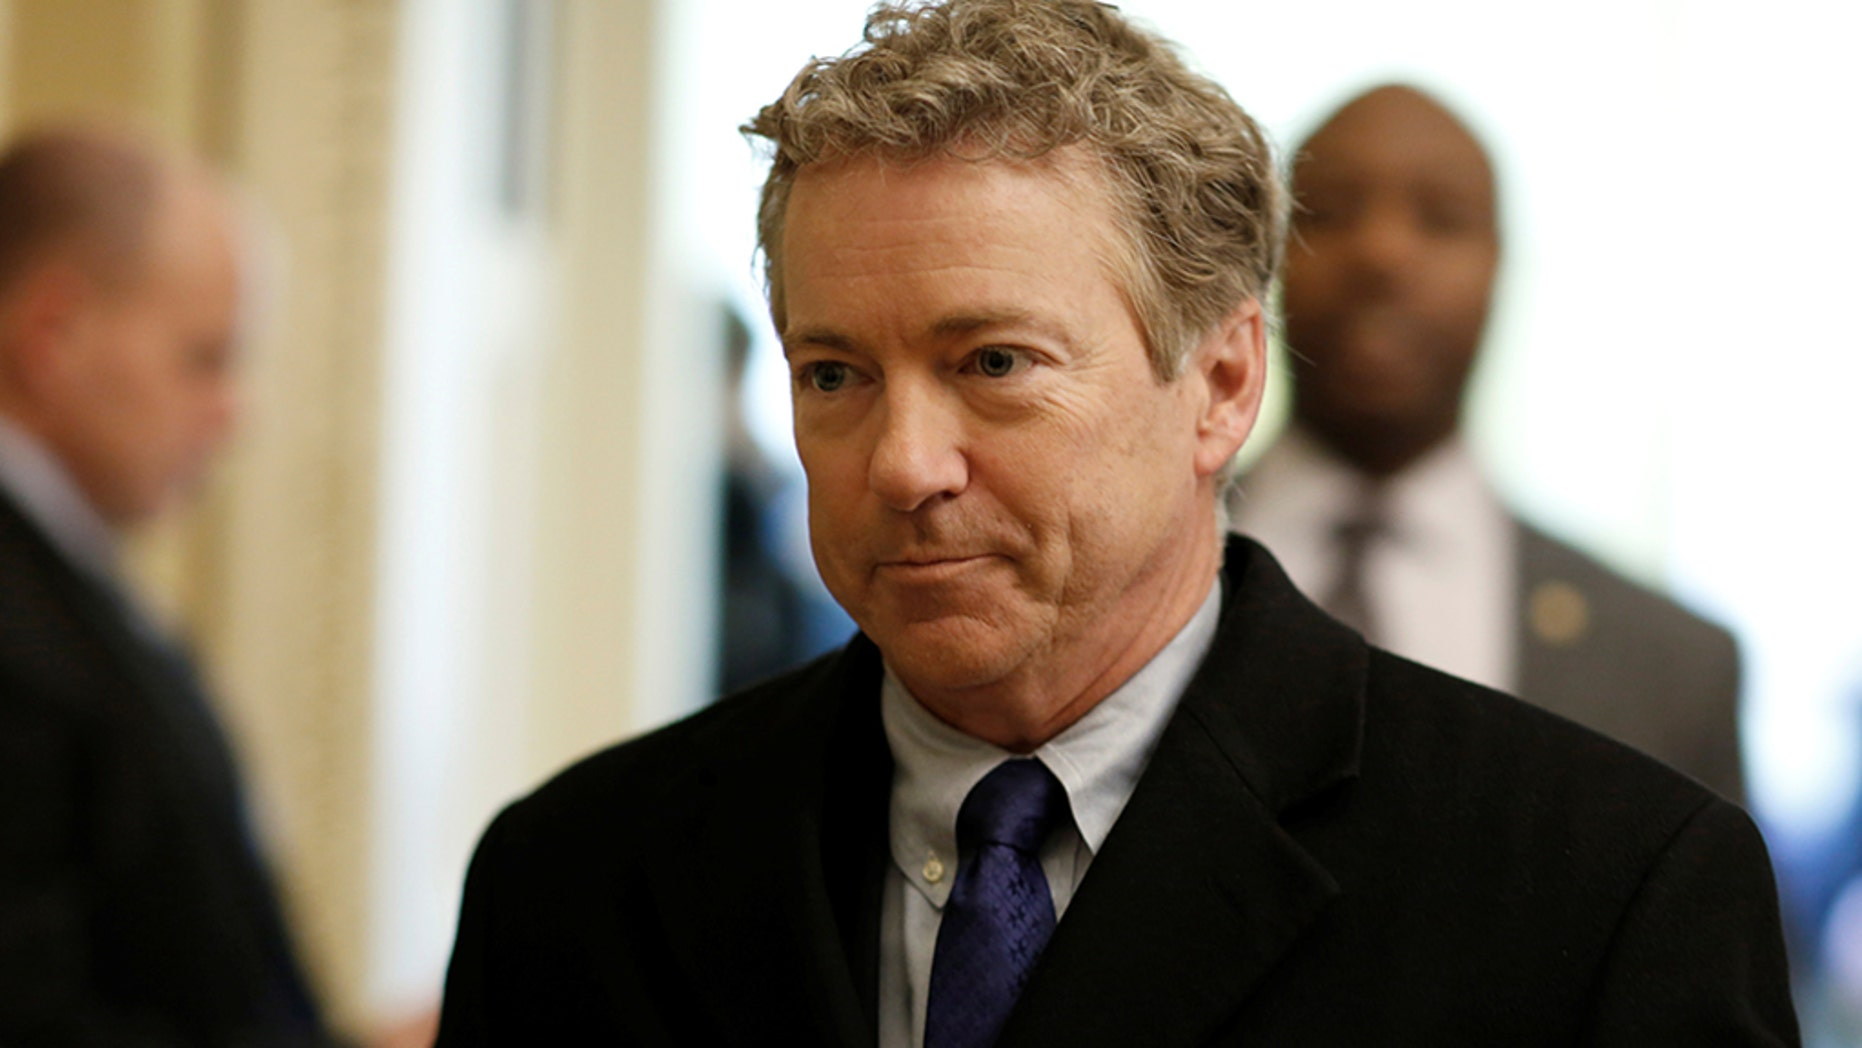 "Sen. Rand Paul, R-Ky., Received more than $ 580,000 in damages on Wednesday after being violently attacked by his neighbor in November 201<div class=""e3lan e3lan-in-post1""><script async src=""//pagead2.googlesyndication.com/pagead/js/adsbygoogle.js""></script>